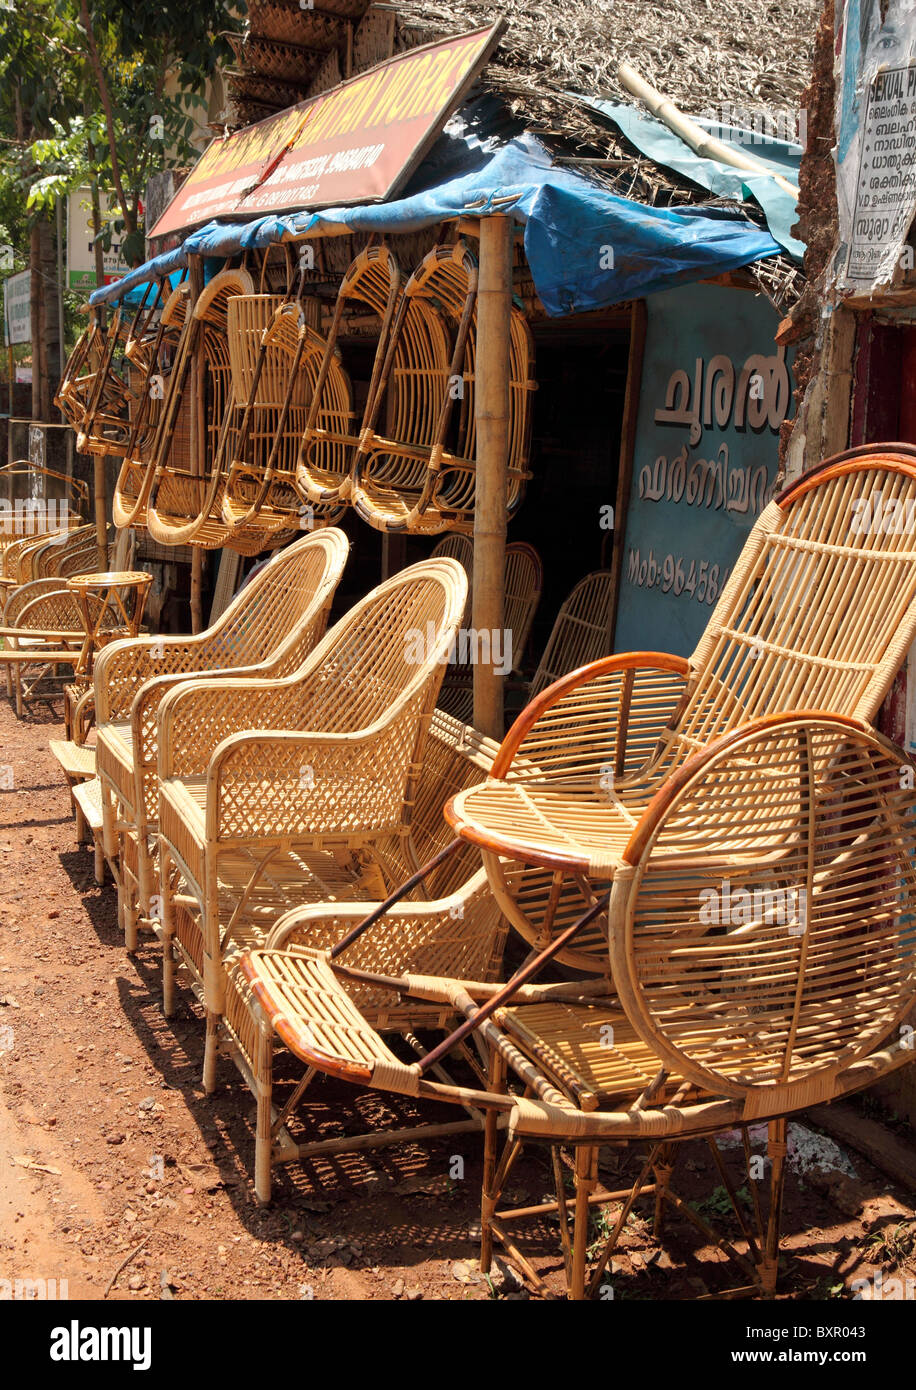 A shop manufacturing traditional indian wicker furniture displays